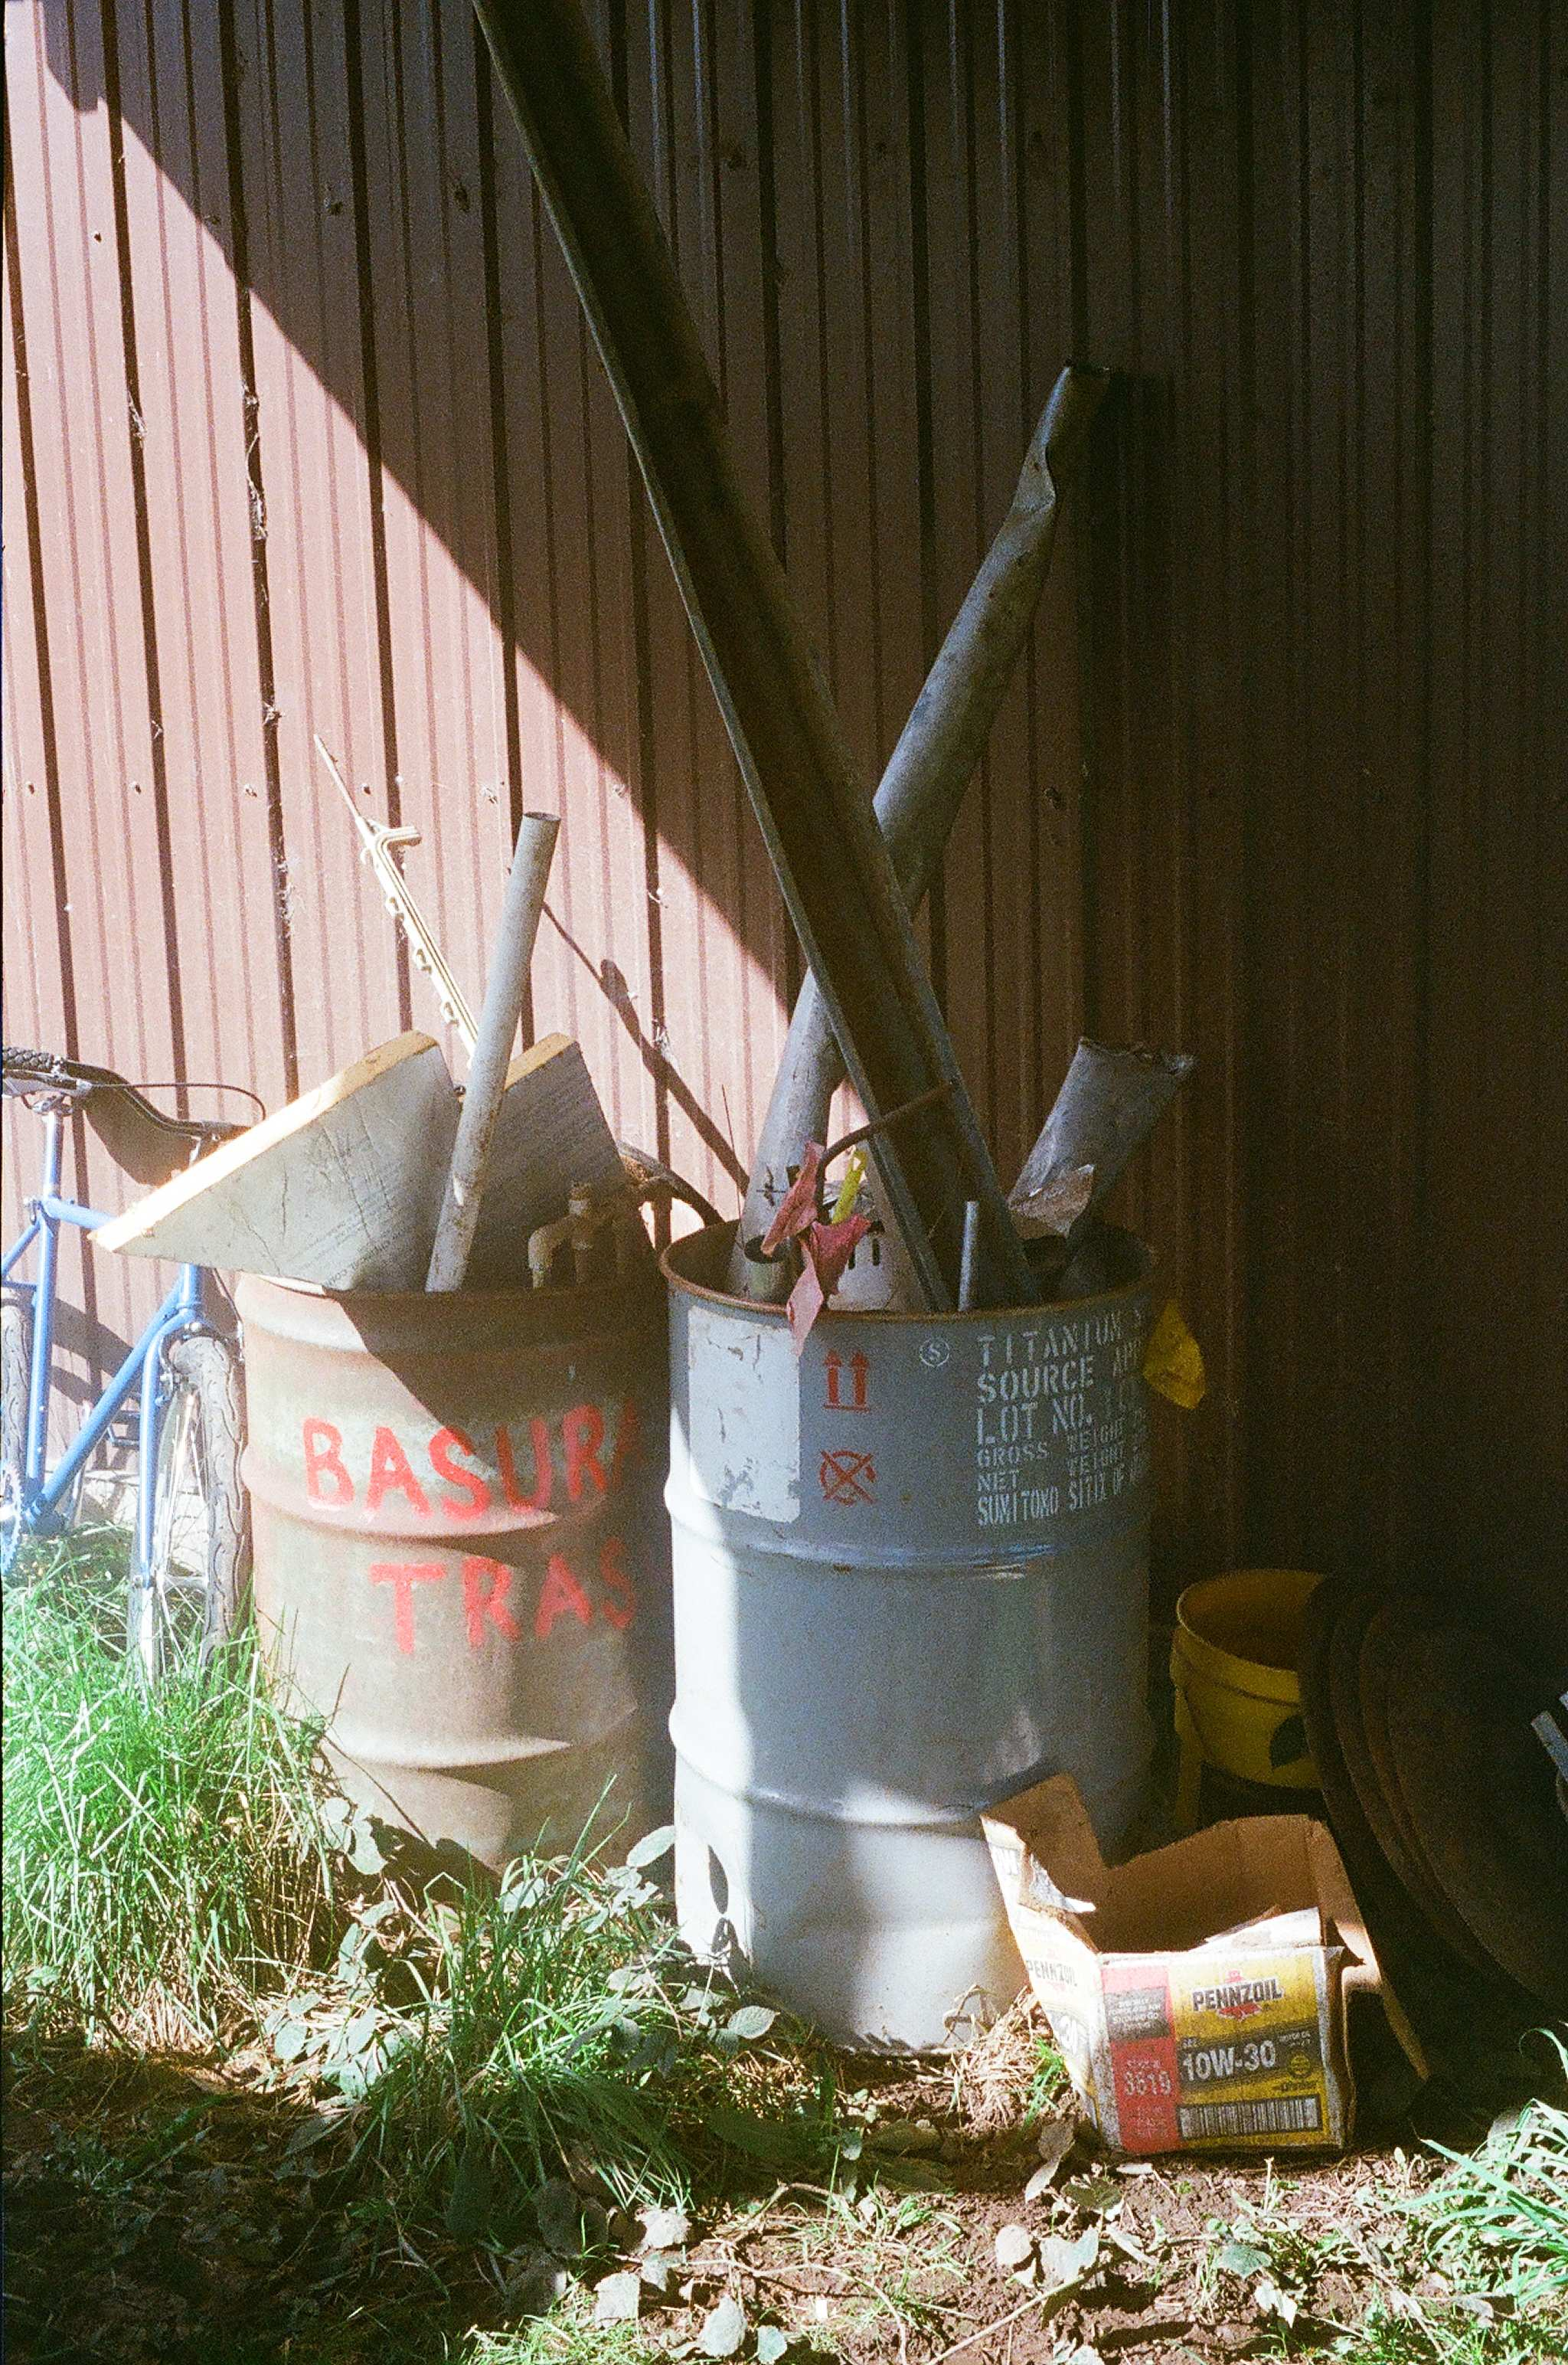 Used metals are stored in barrels and taken to a junkyard annually for recycling.